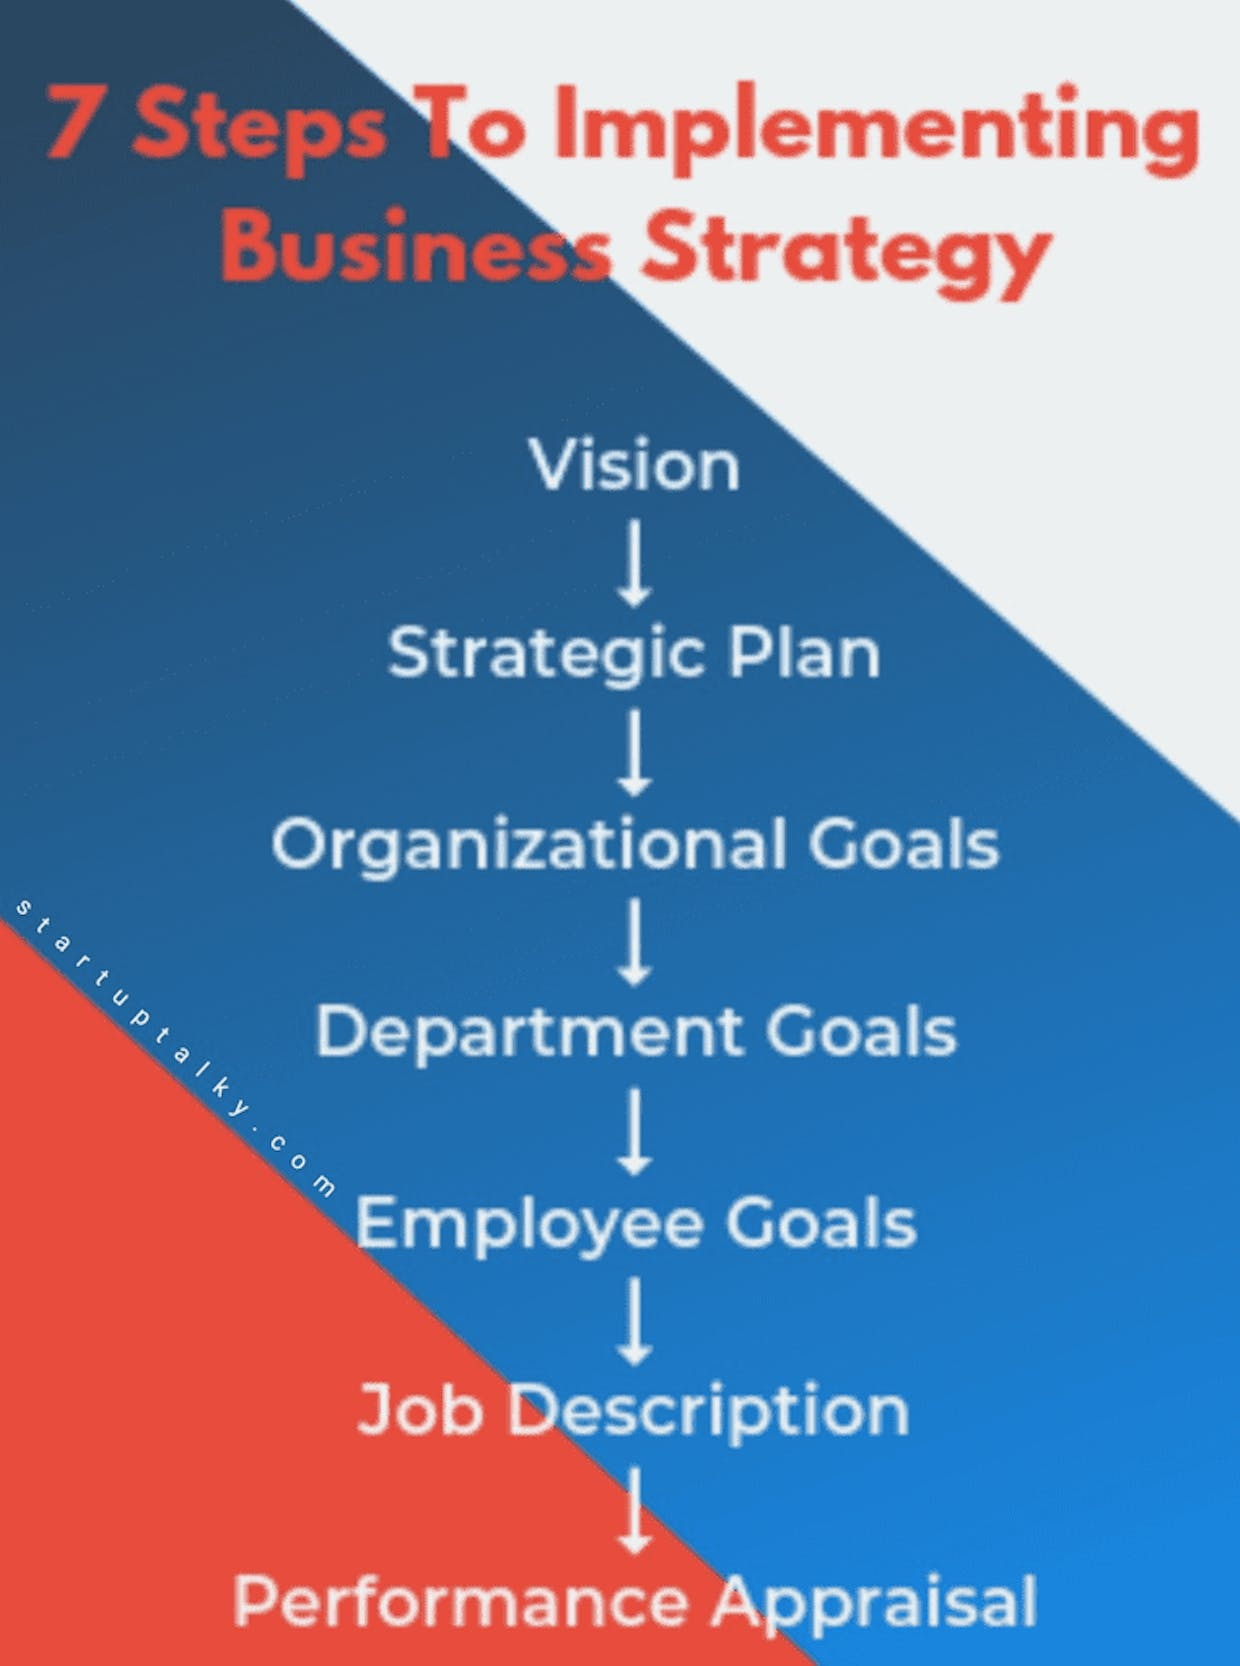 Implementation of a Business strategy